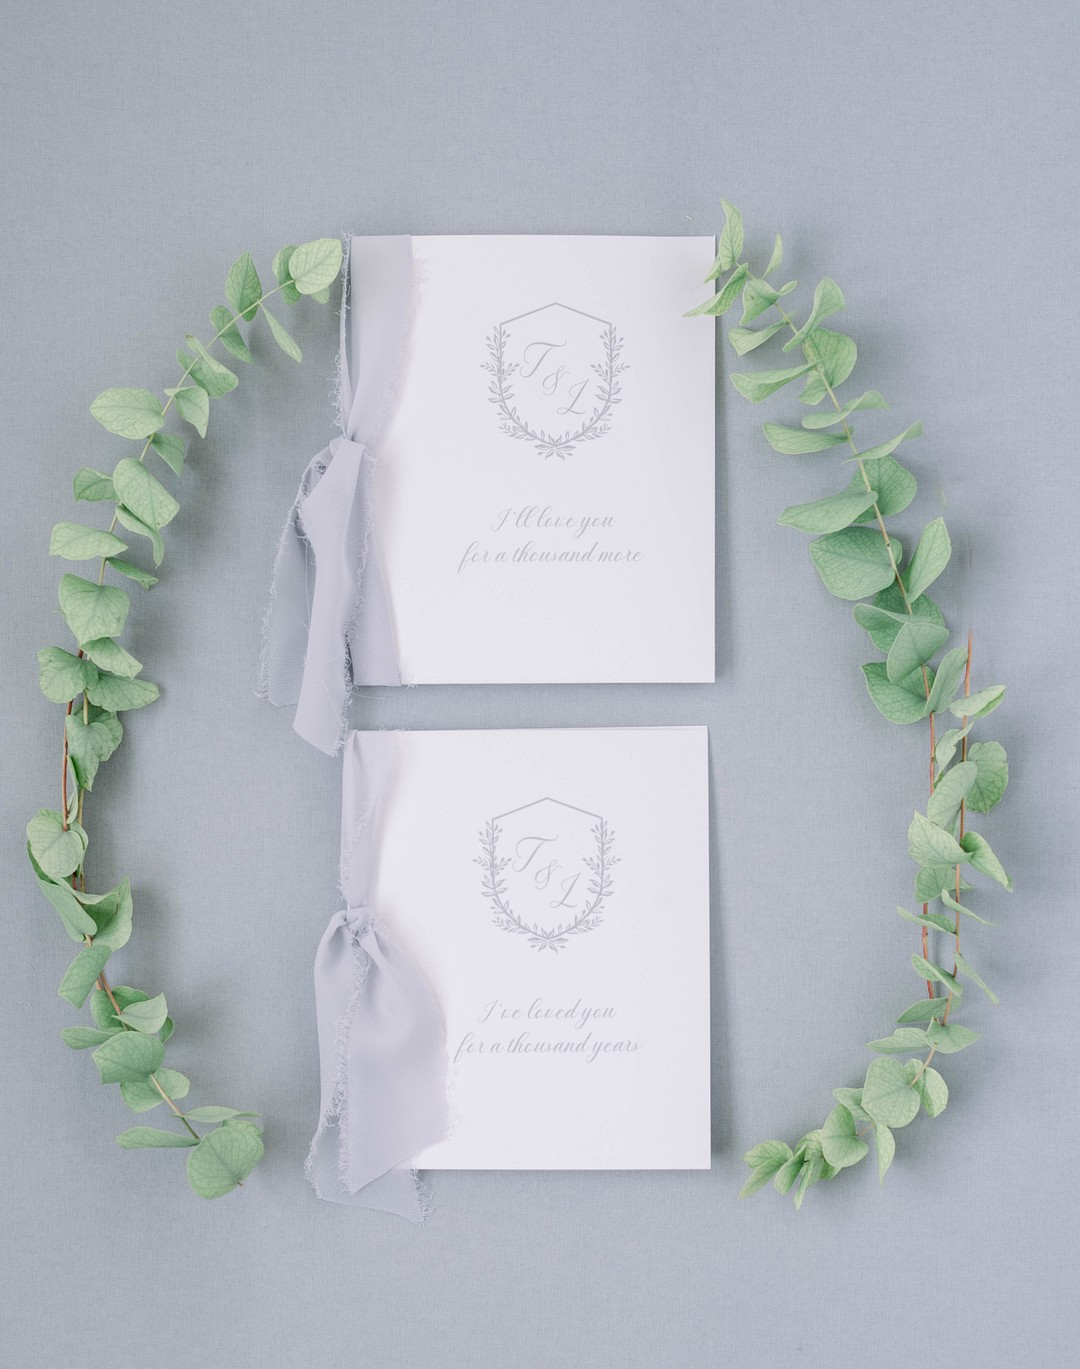 white and grey vow books